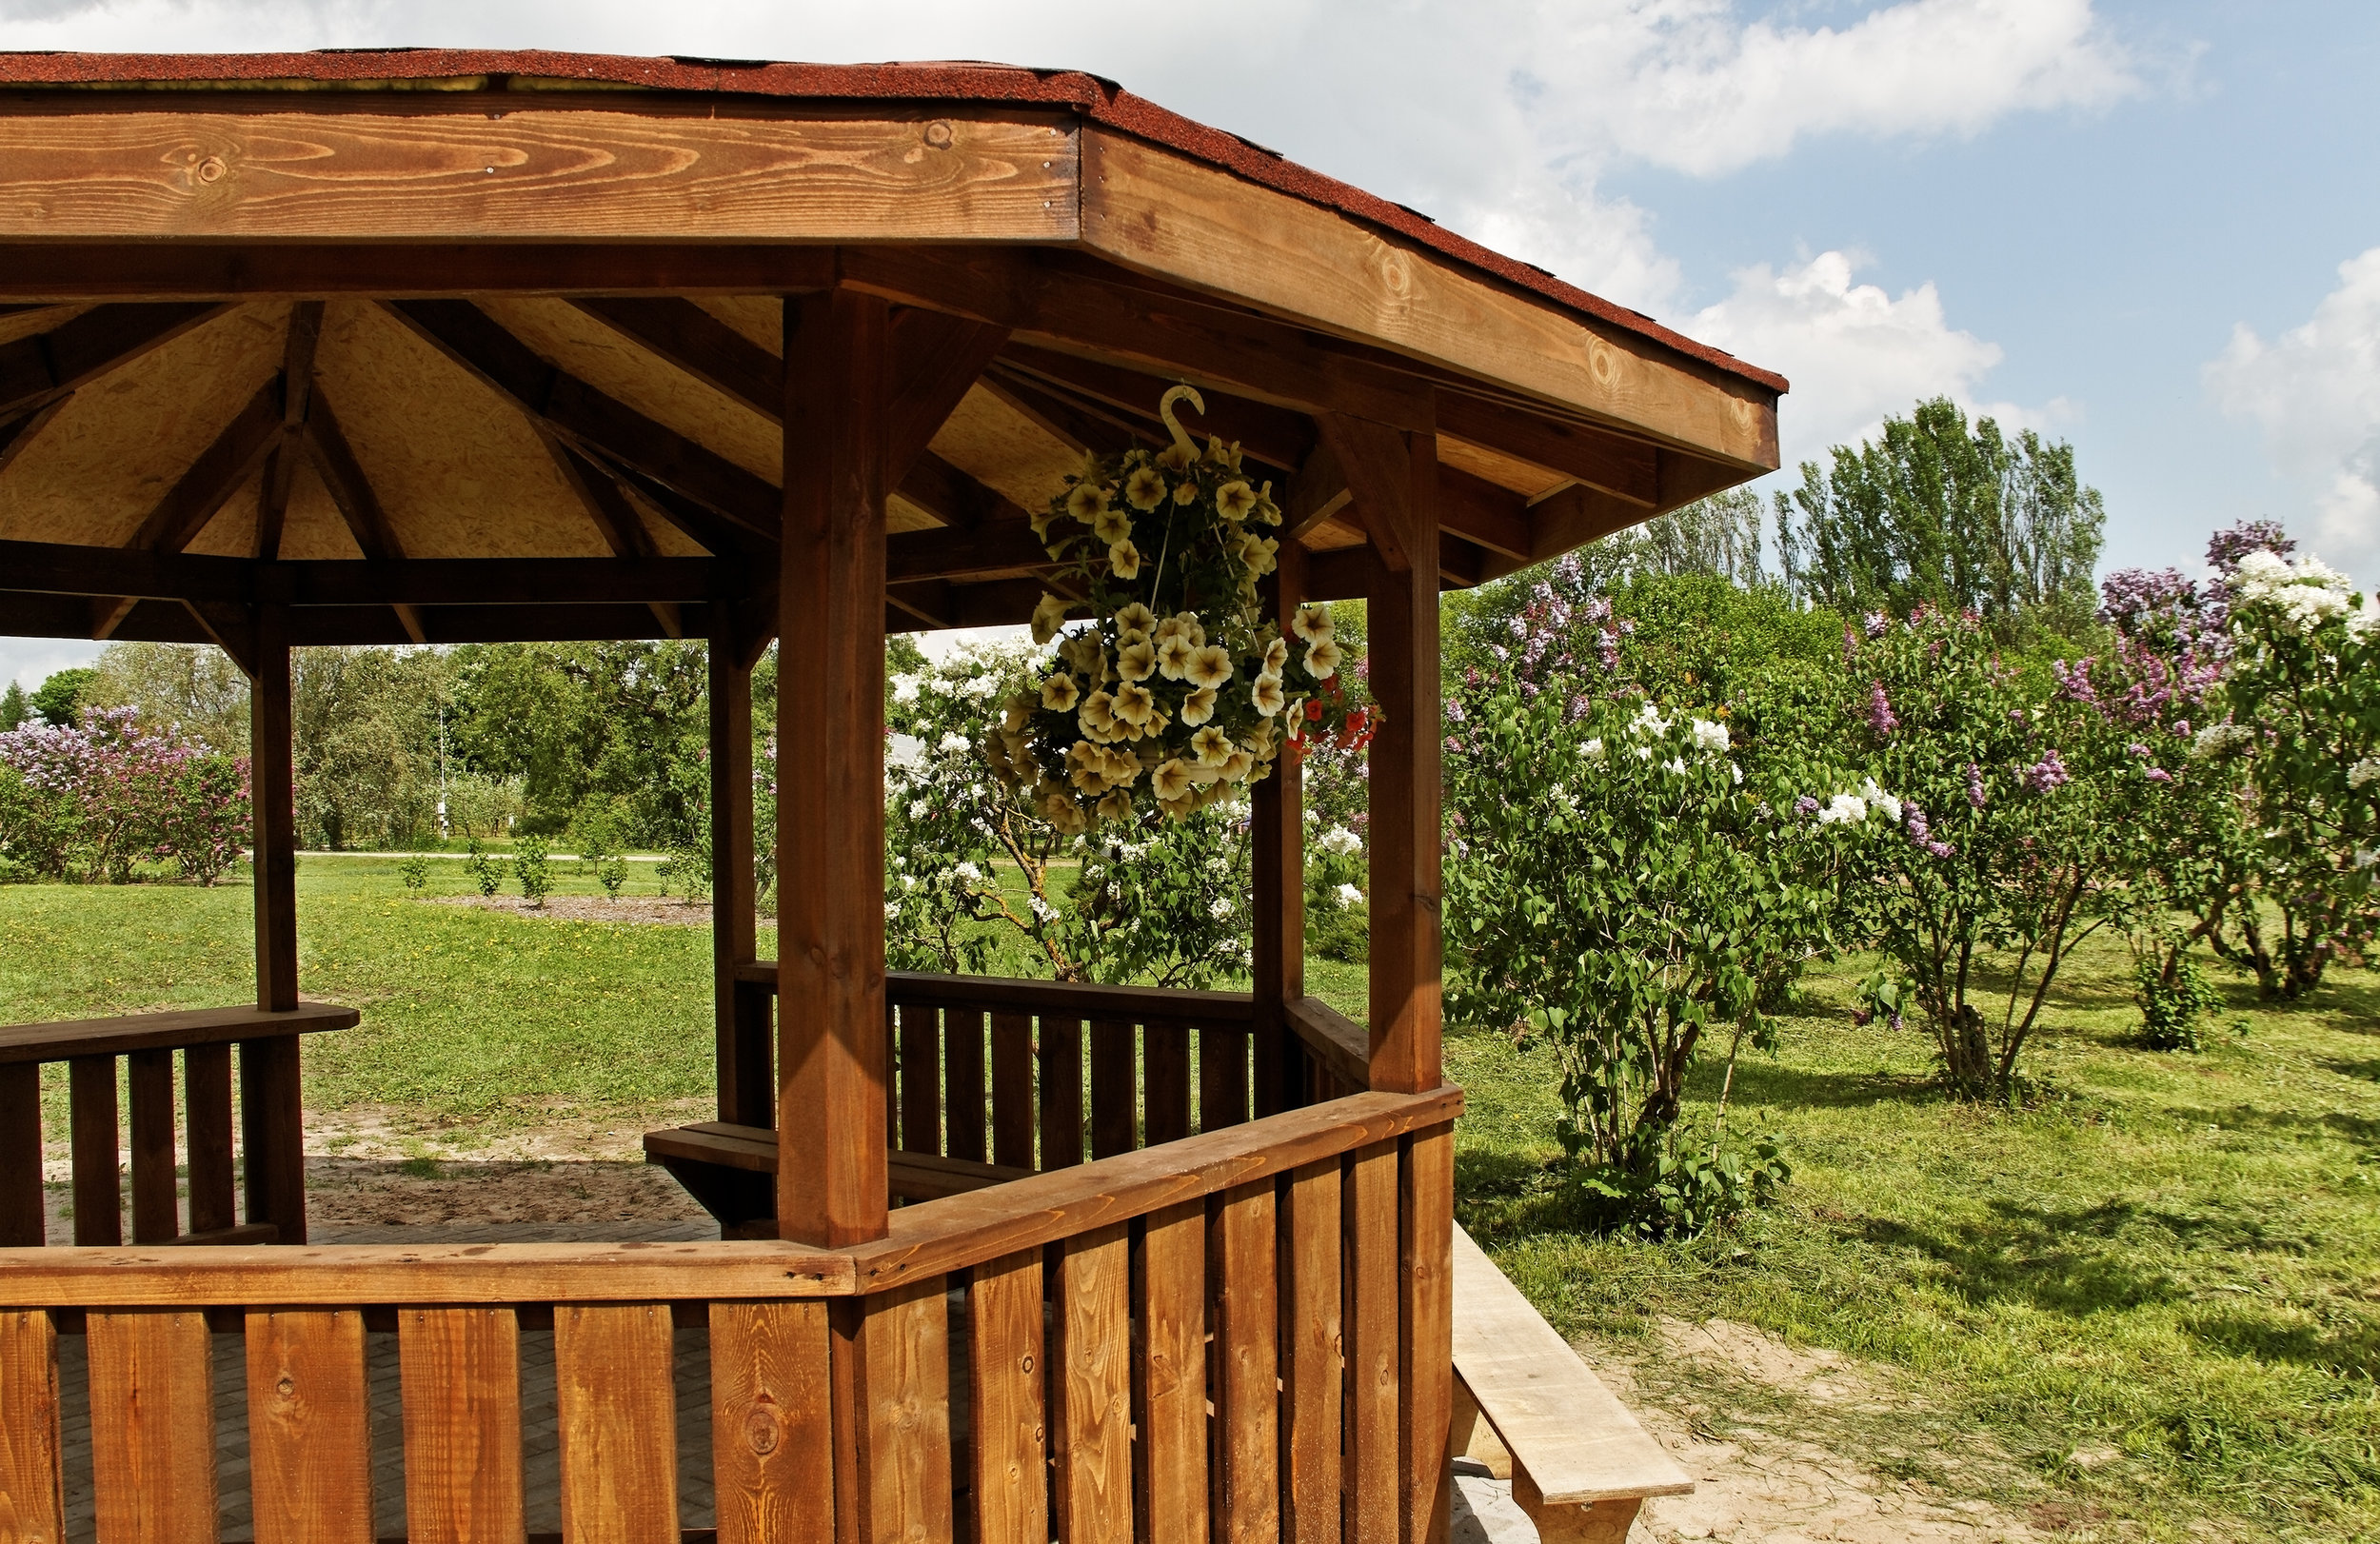 Wood Divisions - Fences, gazebos, decks, and wooden structures